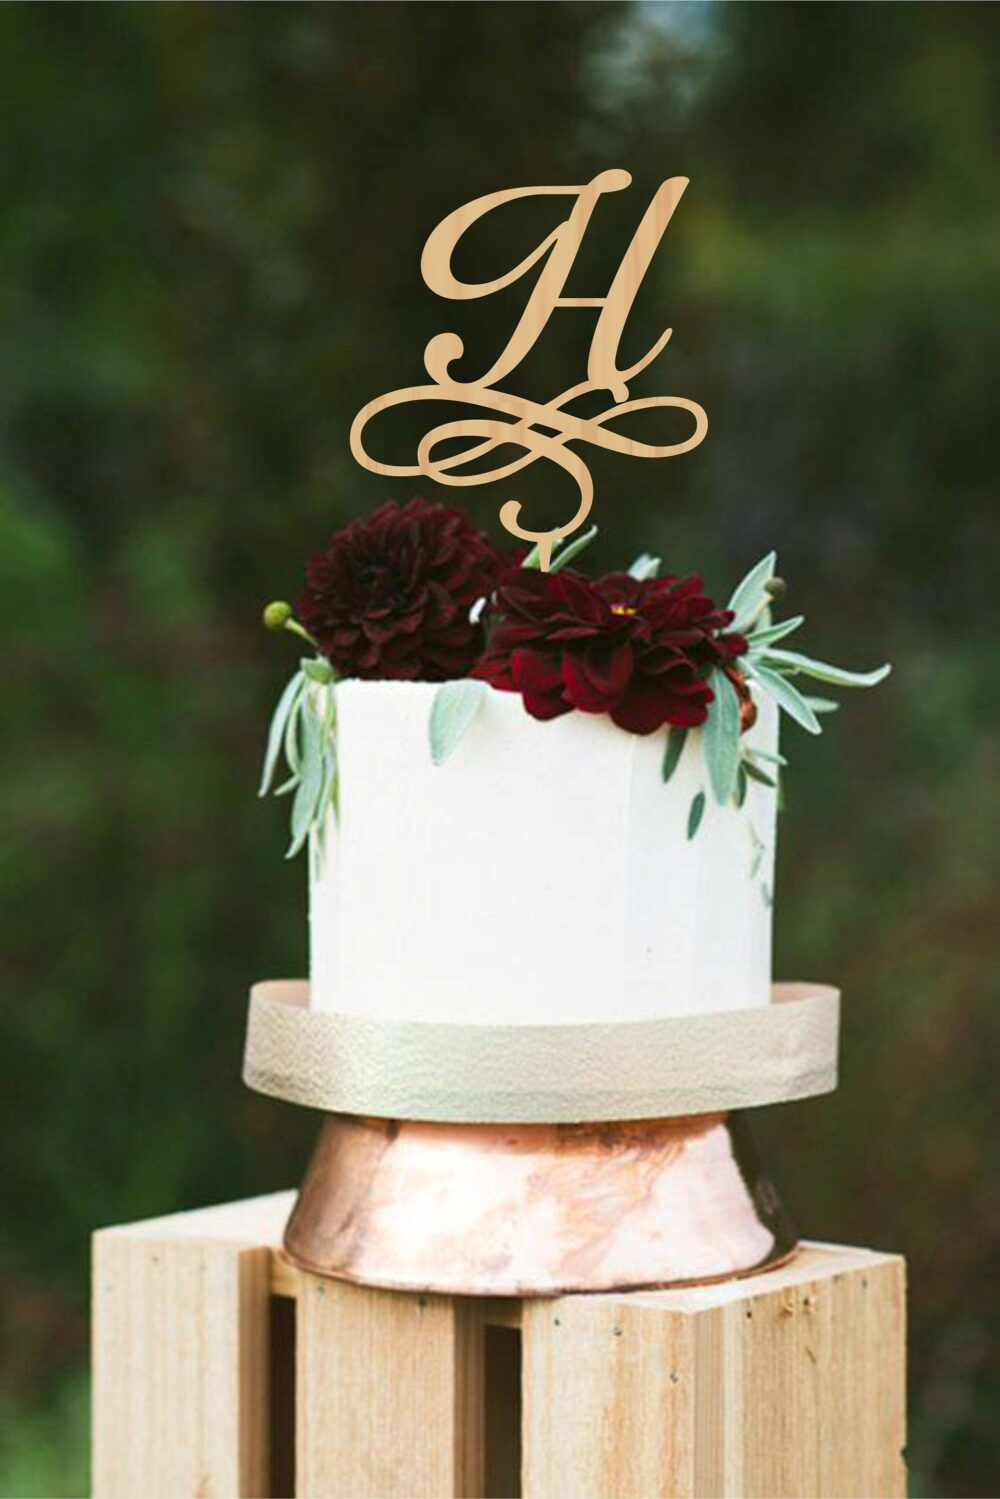 H Cake Topper, Wedding Topper Letter H, Wedding Monogram Cake Topper, Rustic Initial Letter